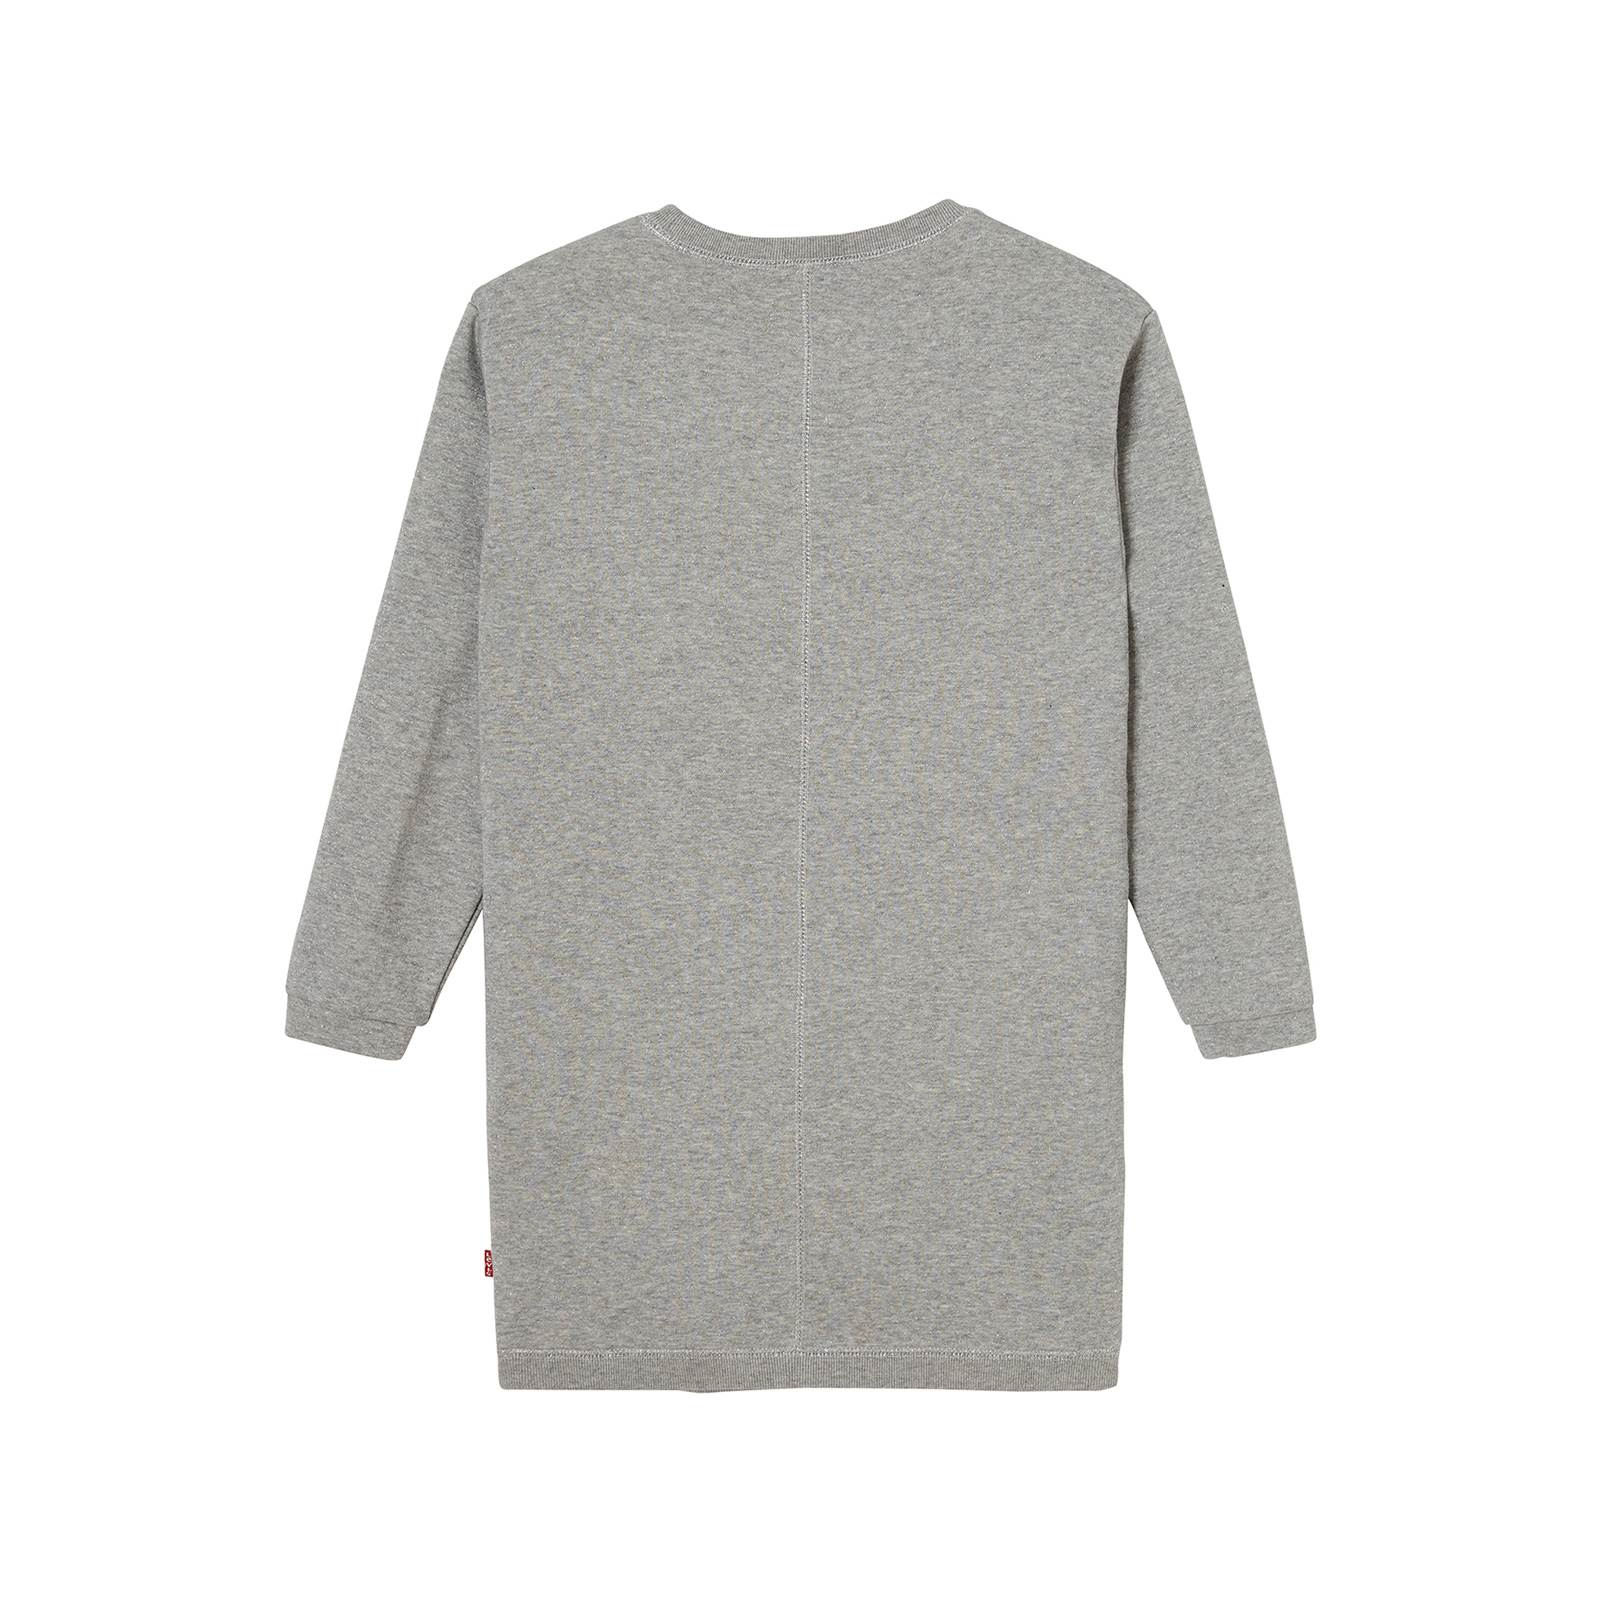 Levi s Kids Bondue - Robe sweat - gris   BrandAlley ad64bb5d1221